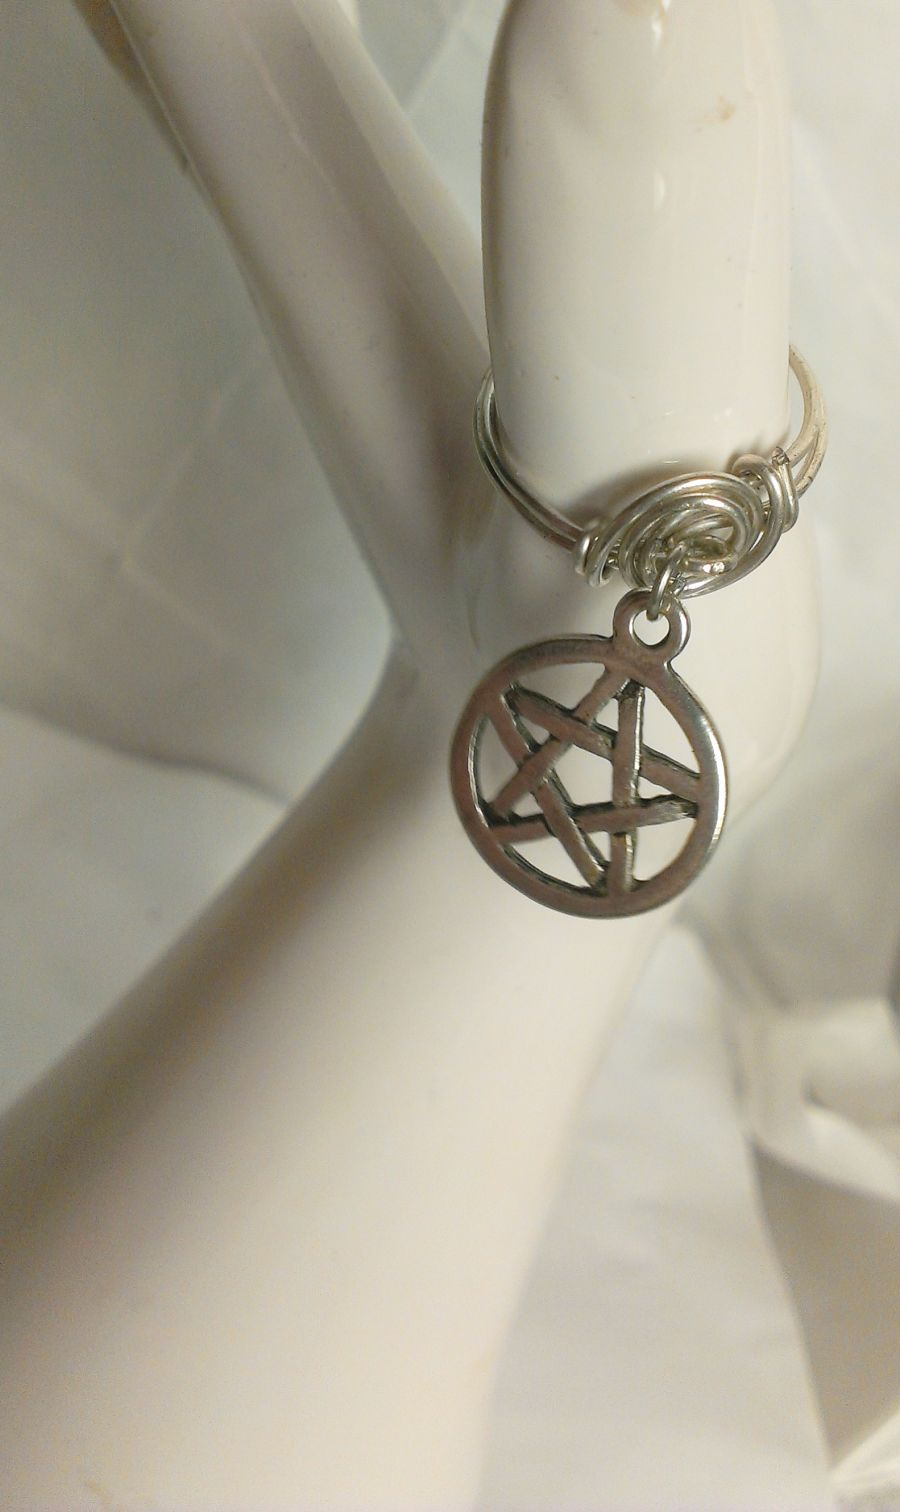 Wicca Pentagram Charm Ring Size P